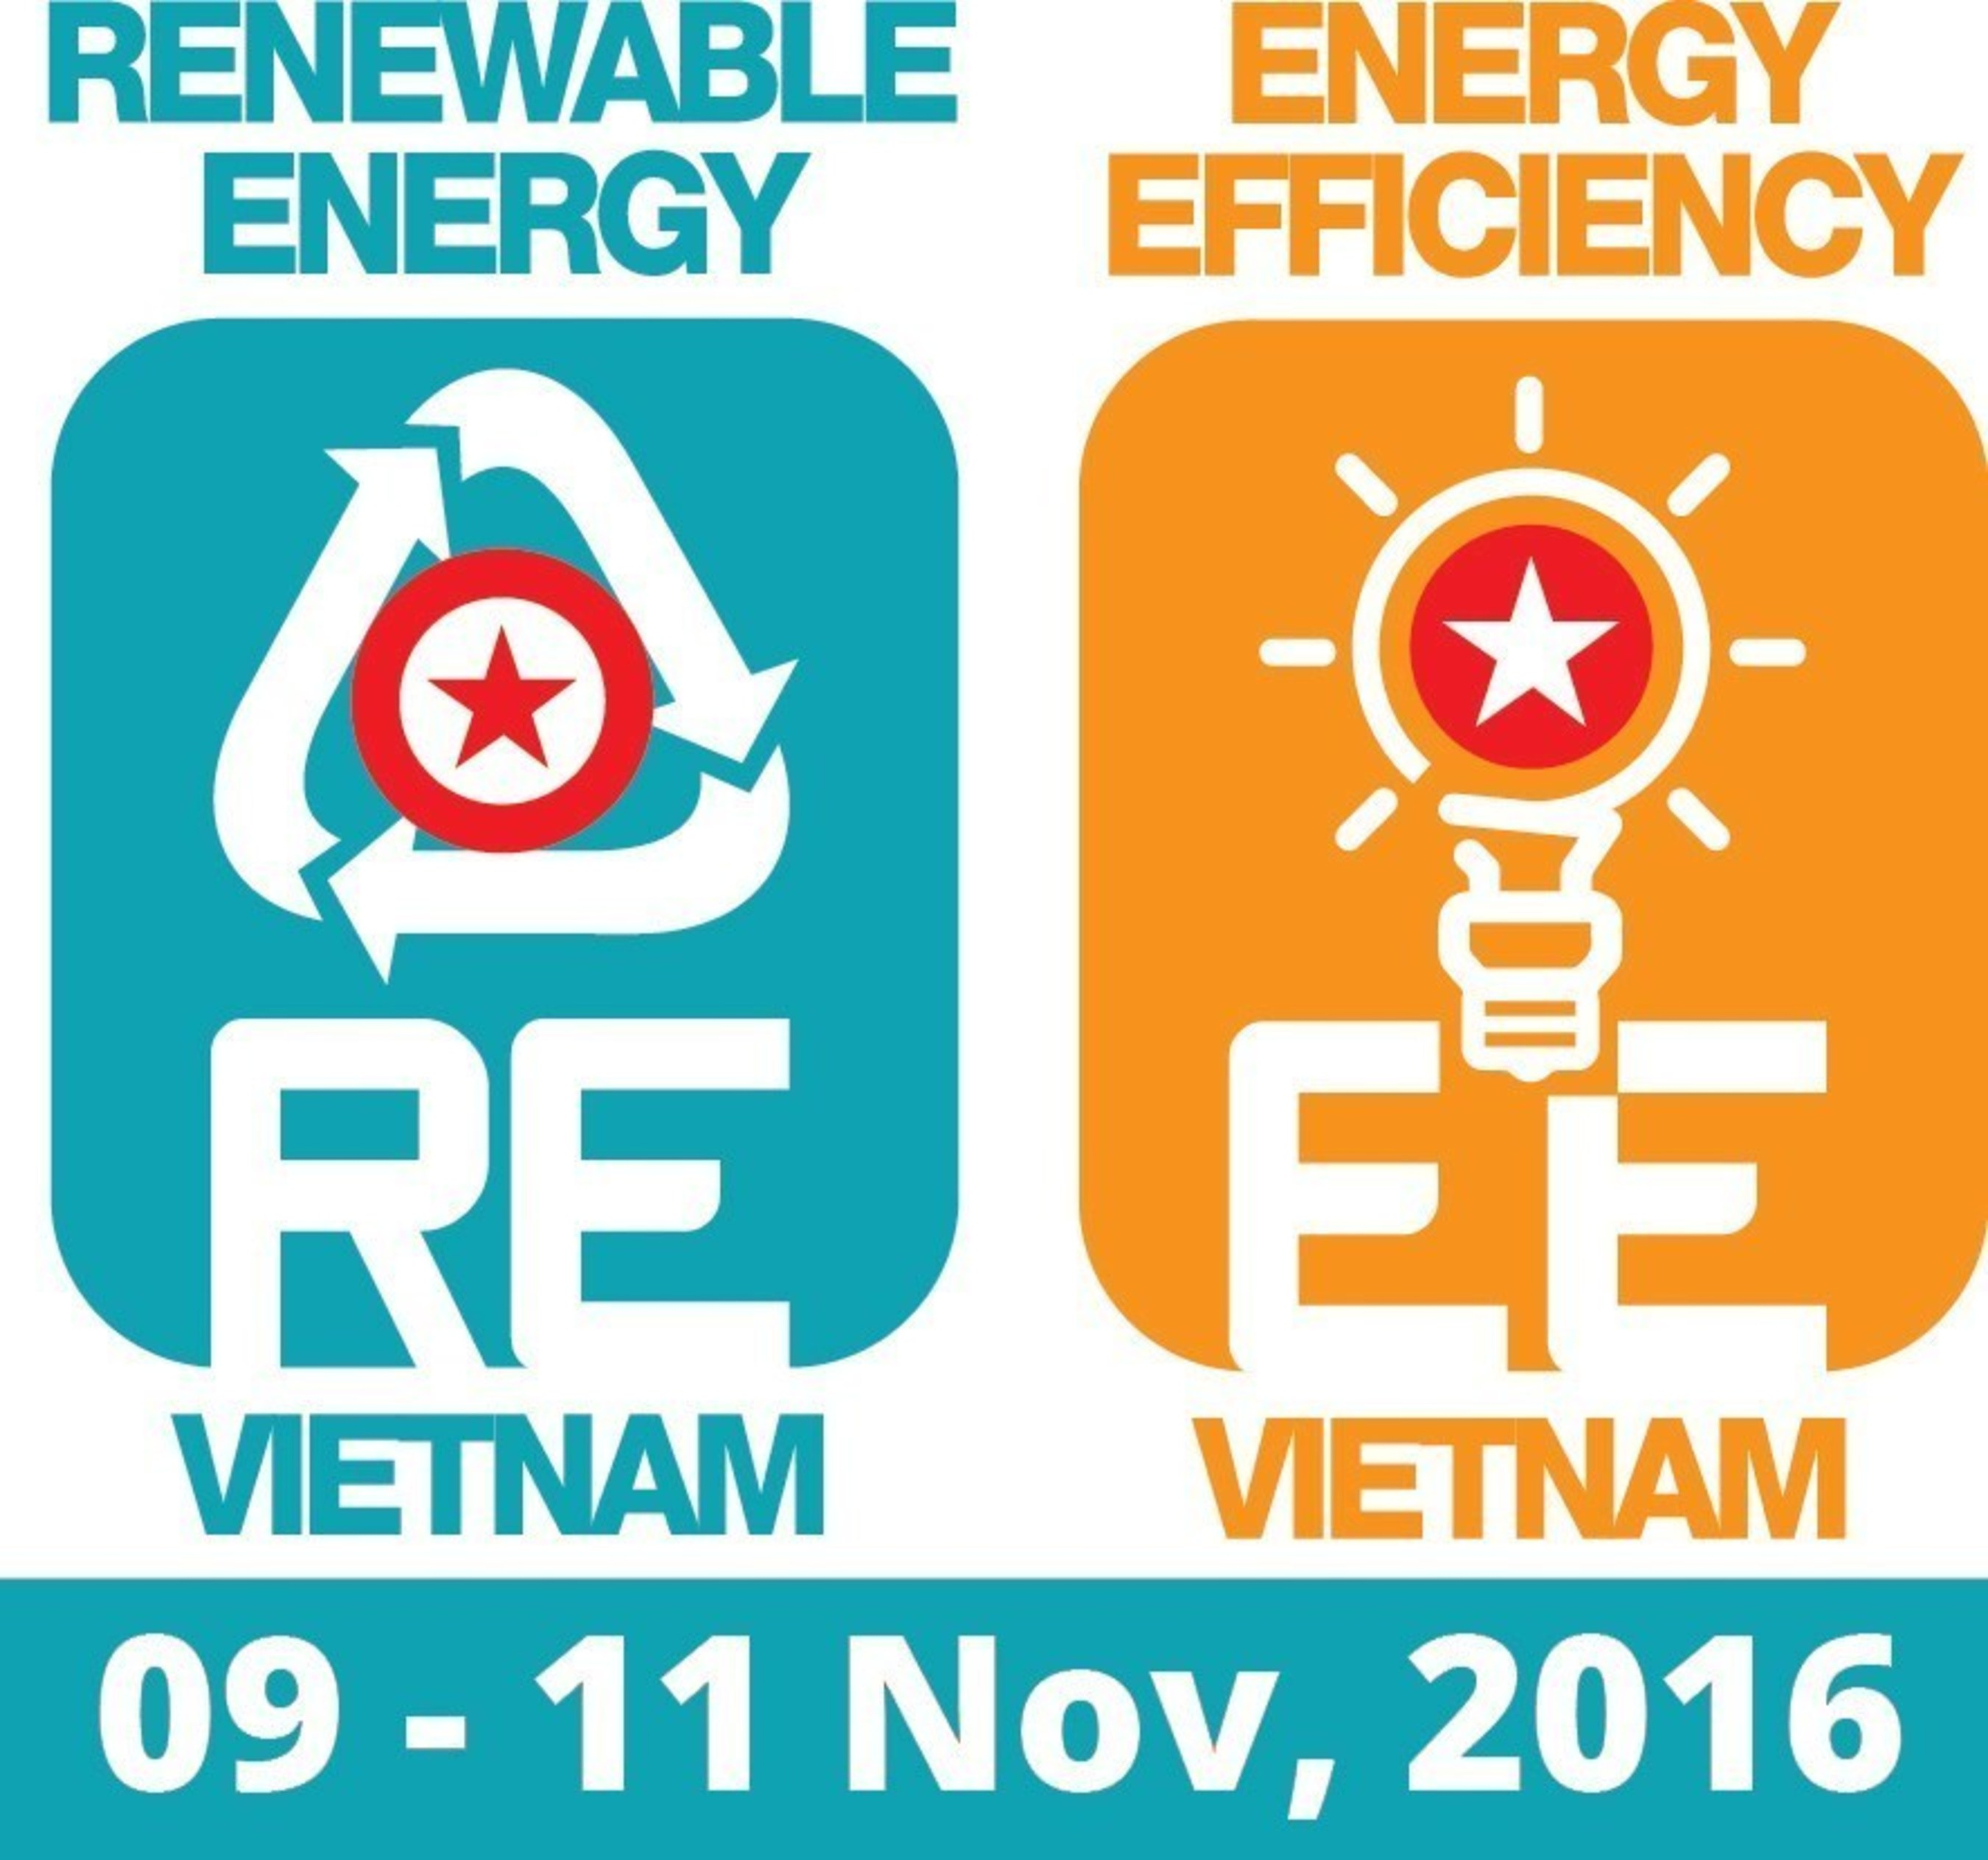 Organiser of leading Renewable Energy and Energy Efficiency event in Vietnam to host dedicated webinar for European companies seeking to tap in to the growing Water and E